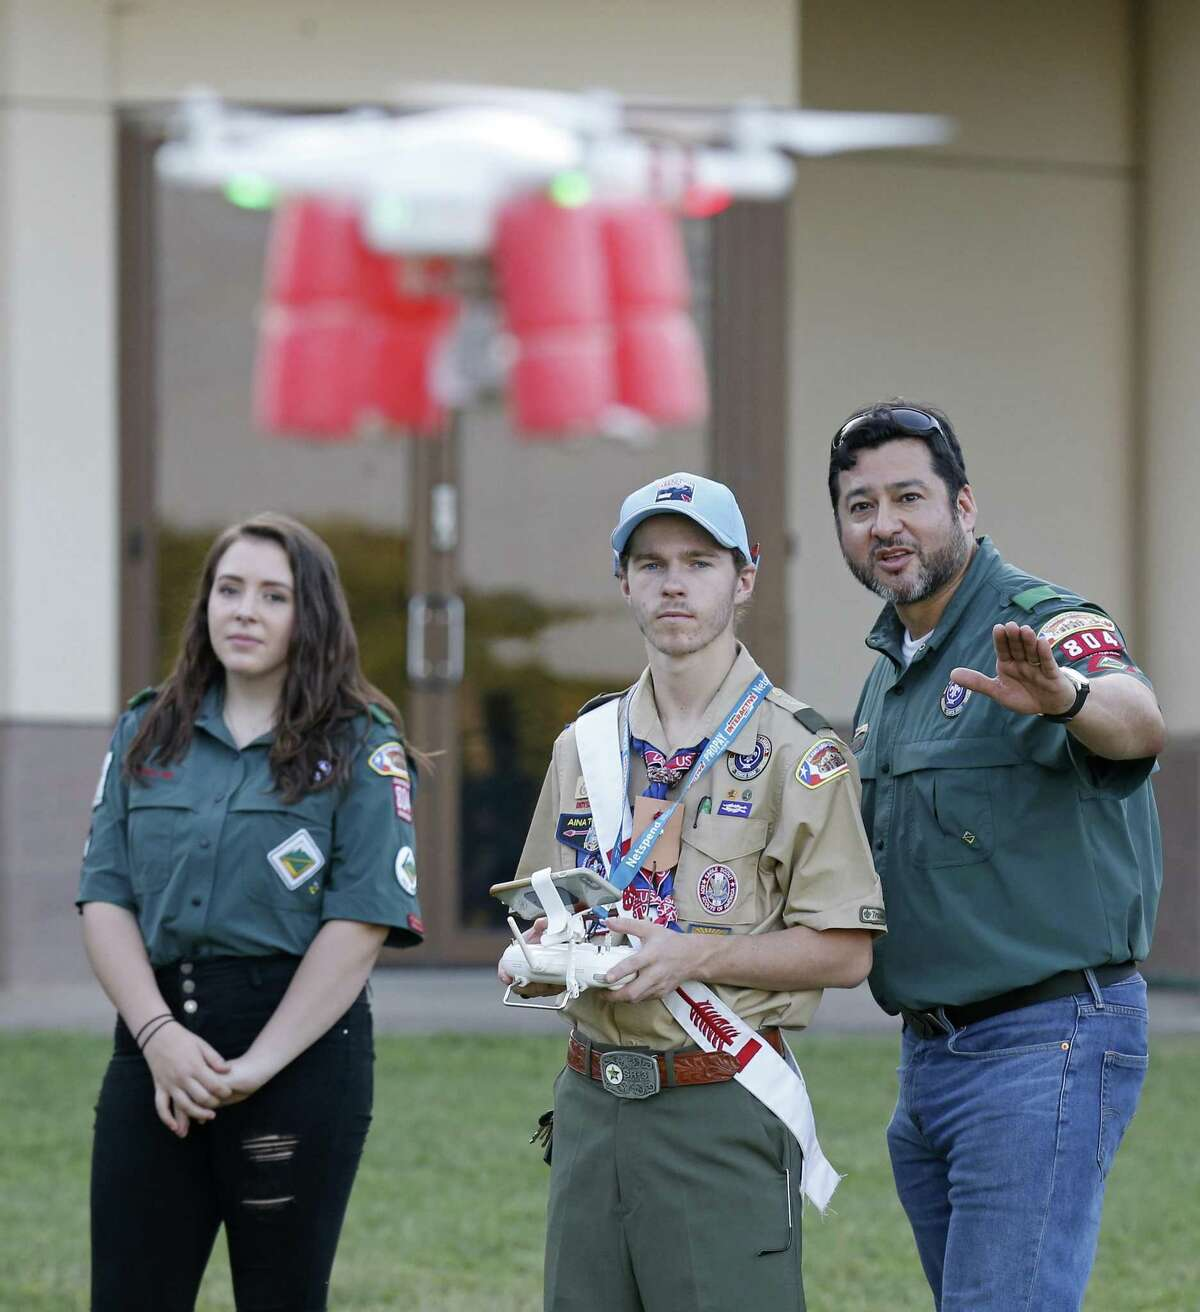 Angel Martinez III (right), a Venturing Crew 804 adviser, shows Eagle Scout Michael Chunat, 17, how to fly a drone as Crew 804 member Jenna Sealy, 15, watches. The Venture Scouts is a fully integrated program offered by the Boy Scouts.